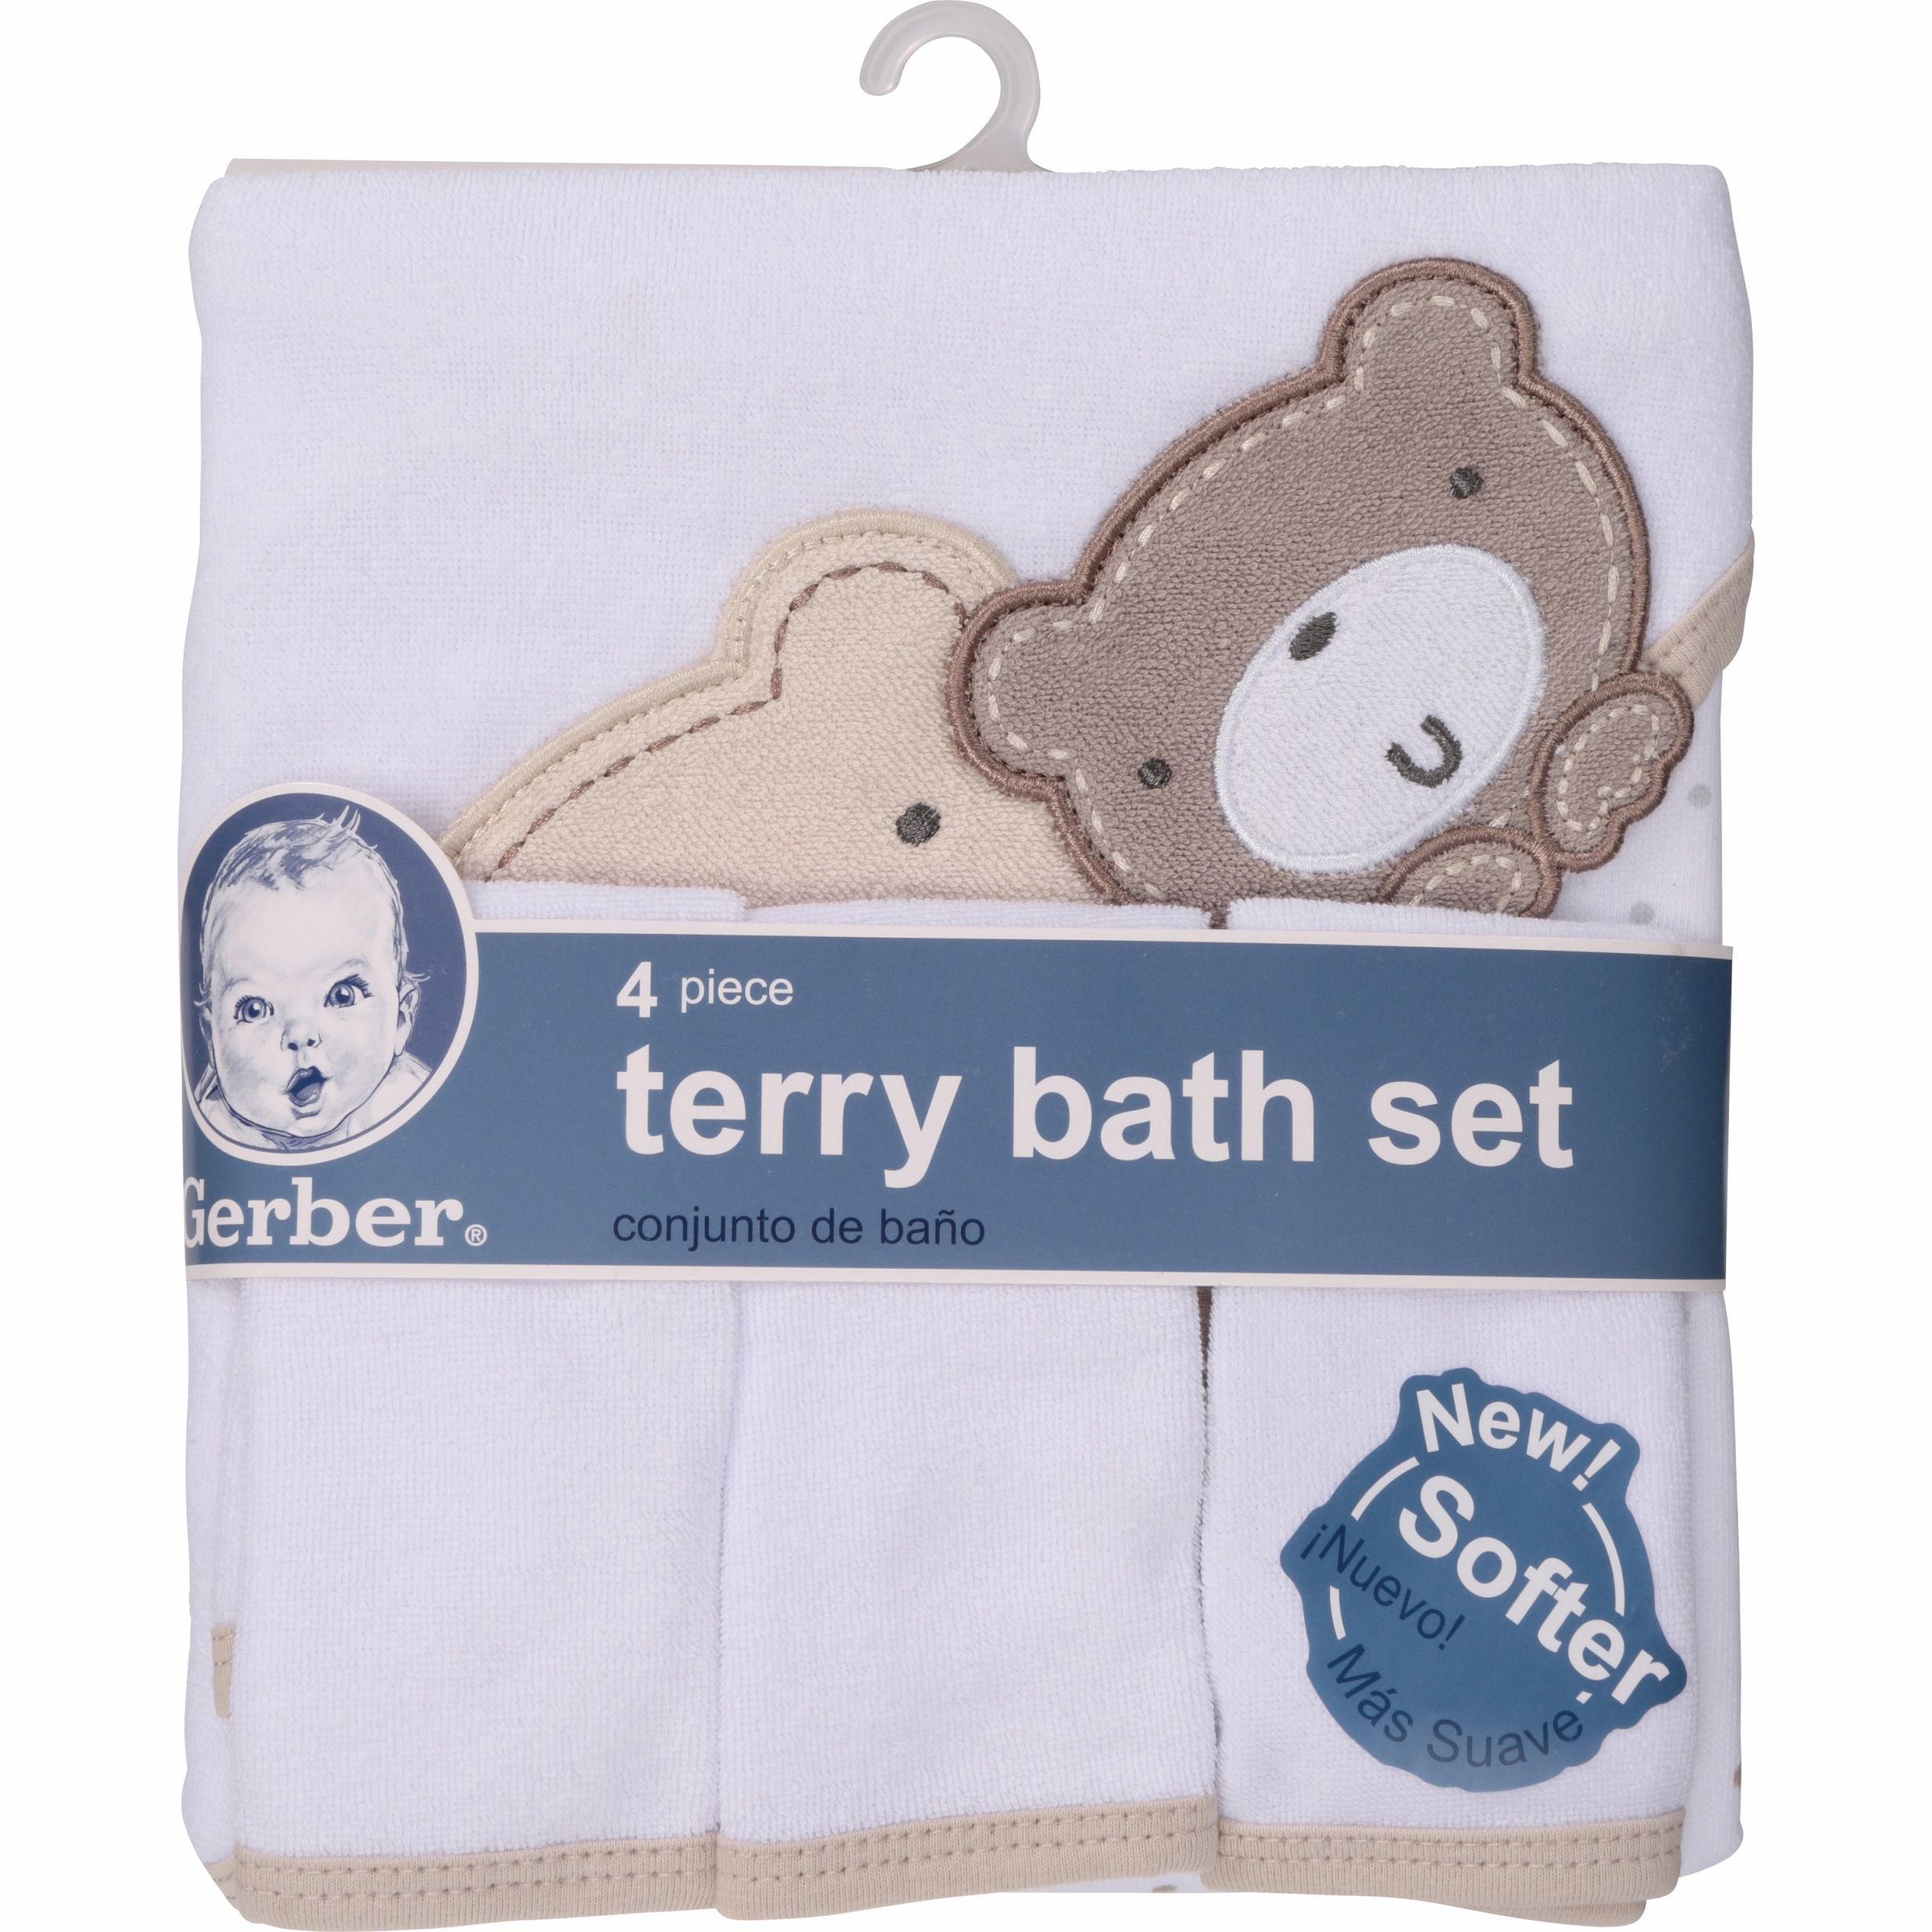 Gerber Newborn Baby Unisex Towel and Washcloths Bath Gift Set, 4-Piece